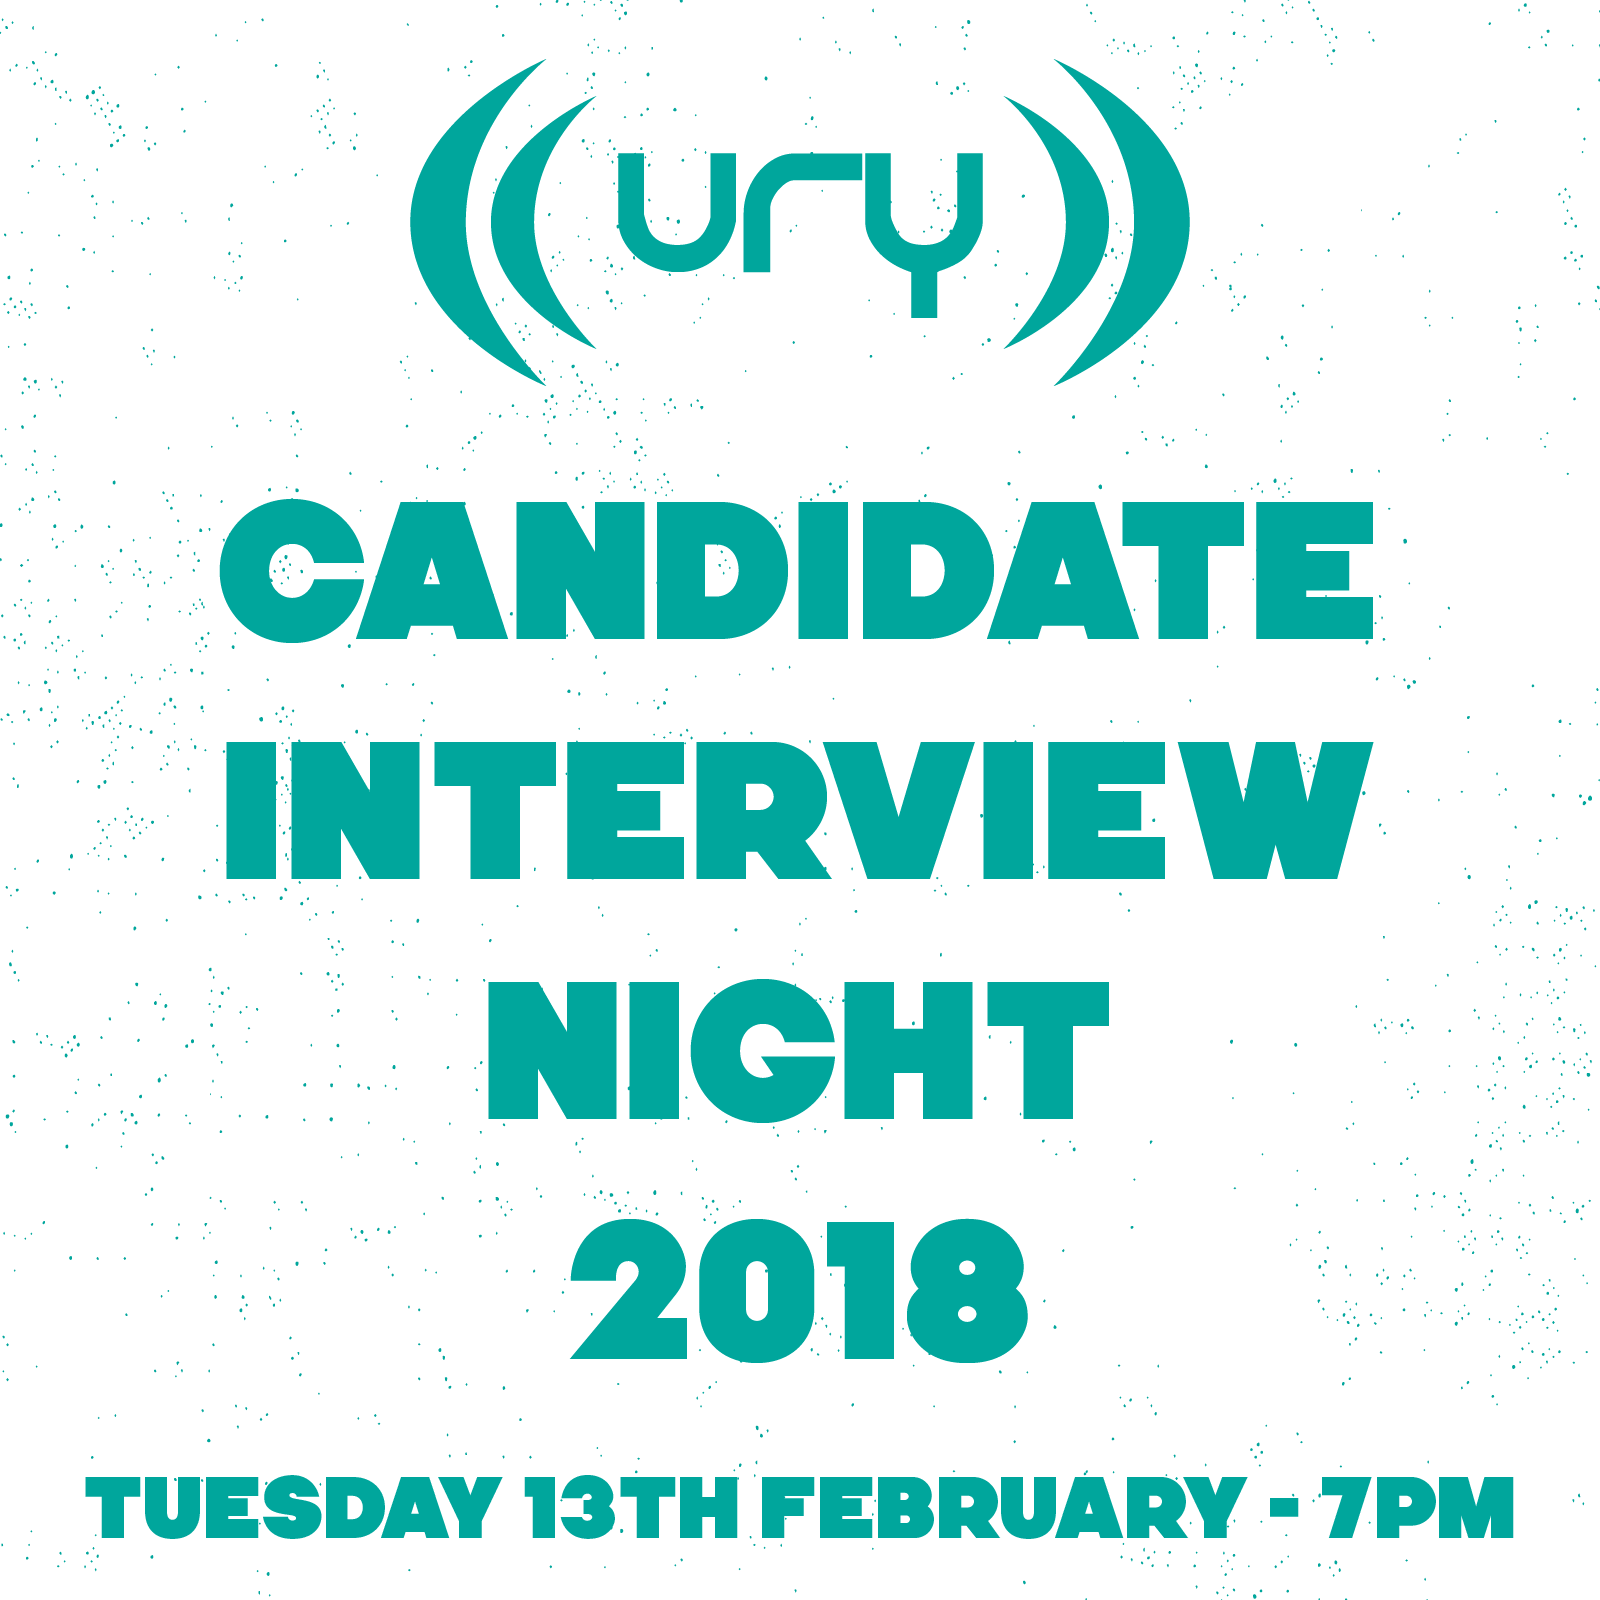 YUSU Elections 2018: Candidate Interview Night logo.